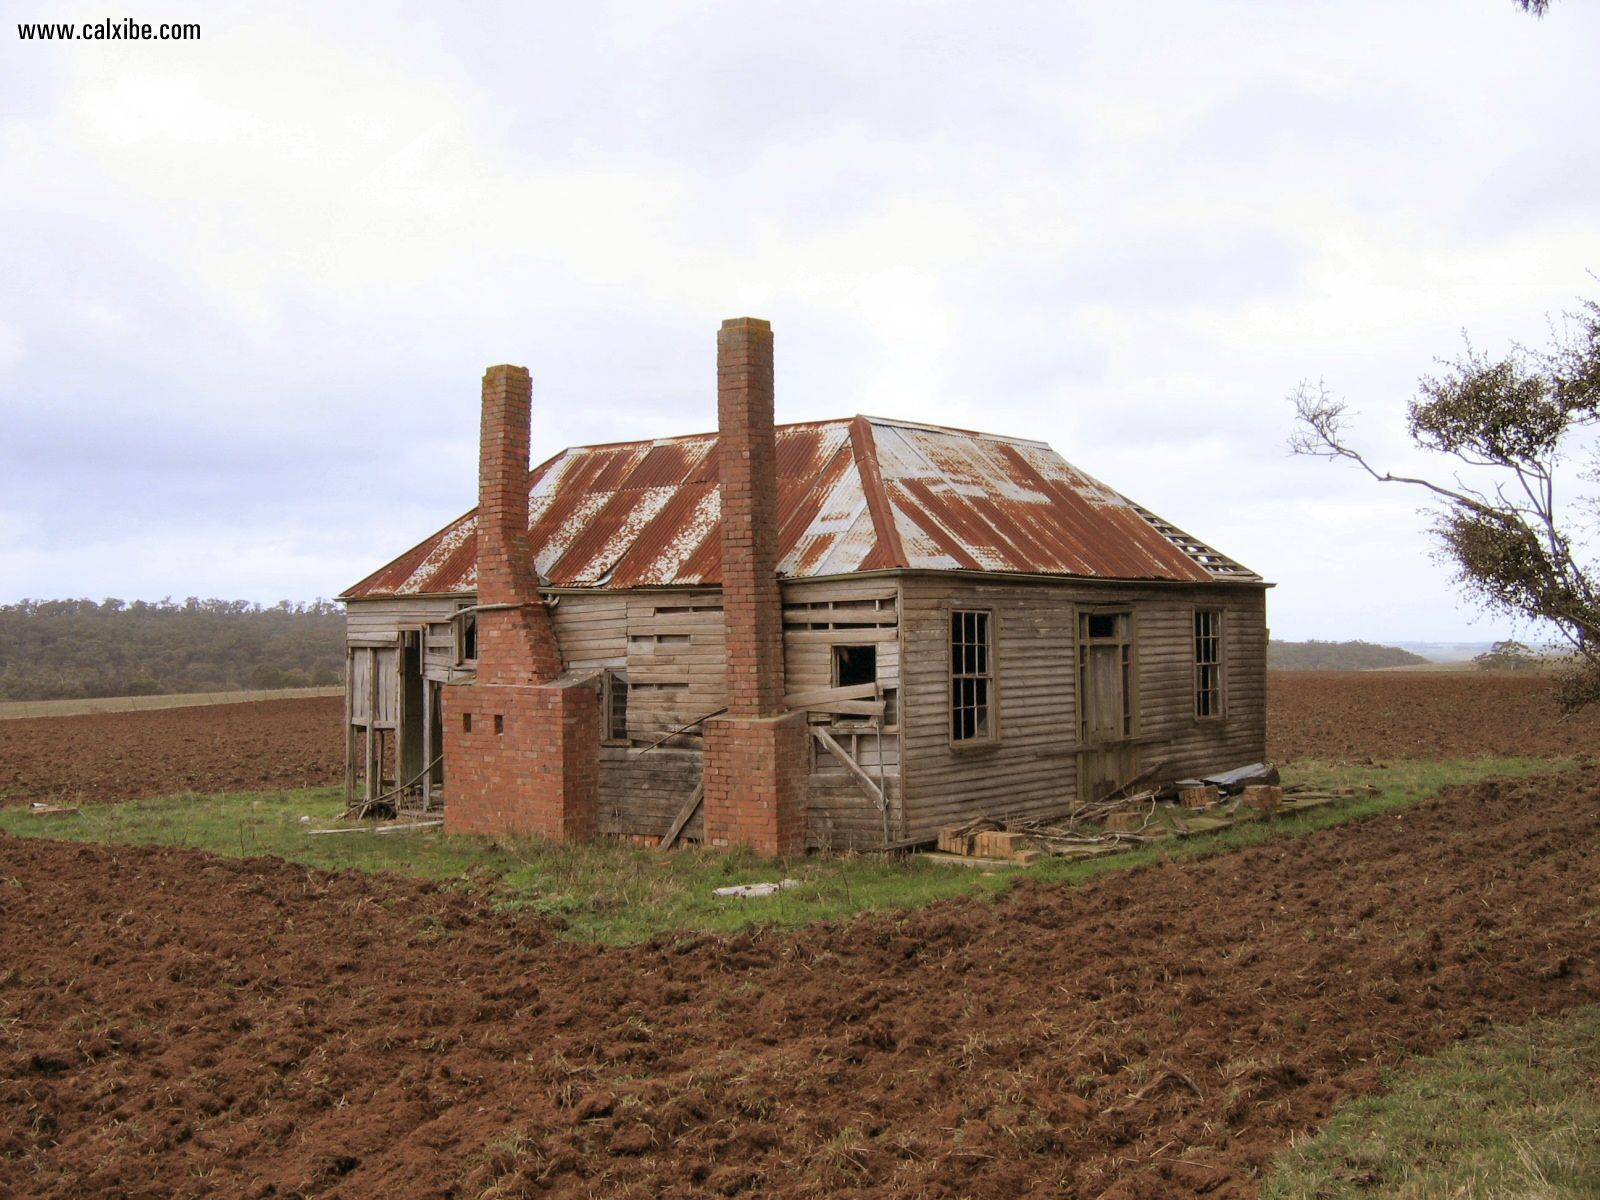 Miscellaneous Country Old Farmhouse picture nr 11482 1600x1200